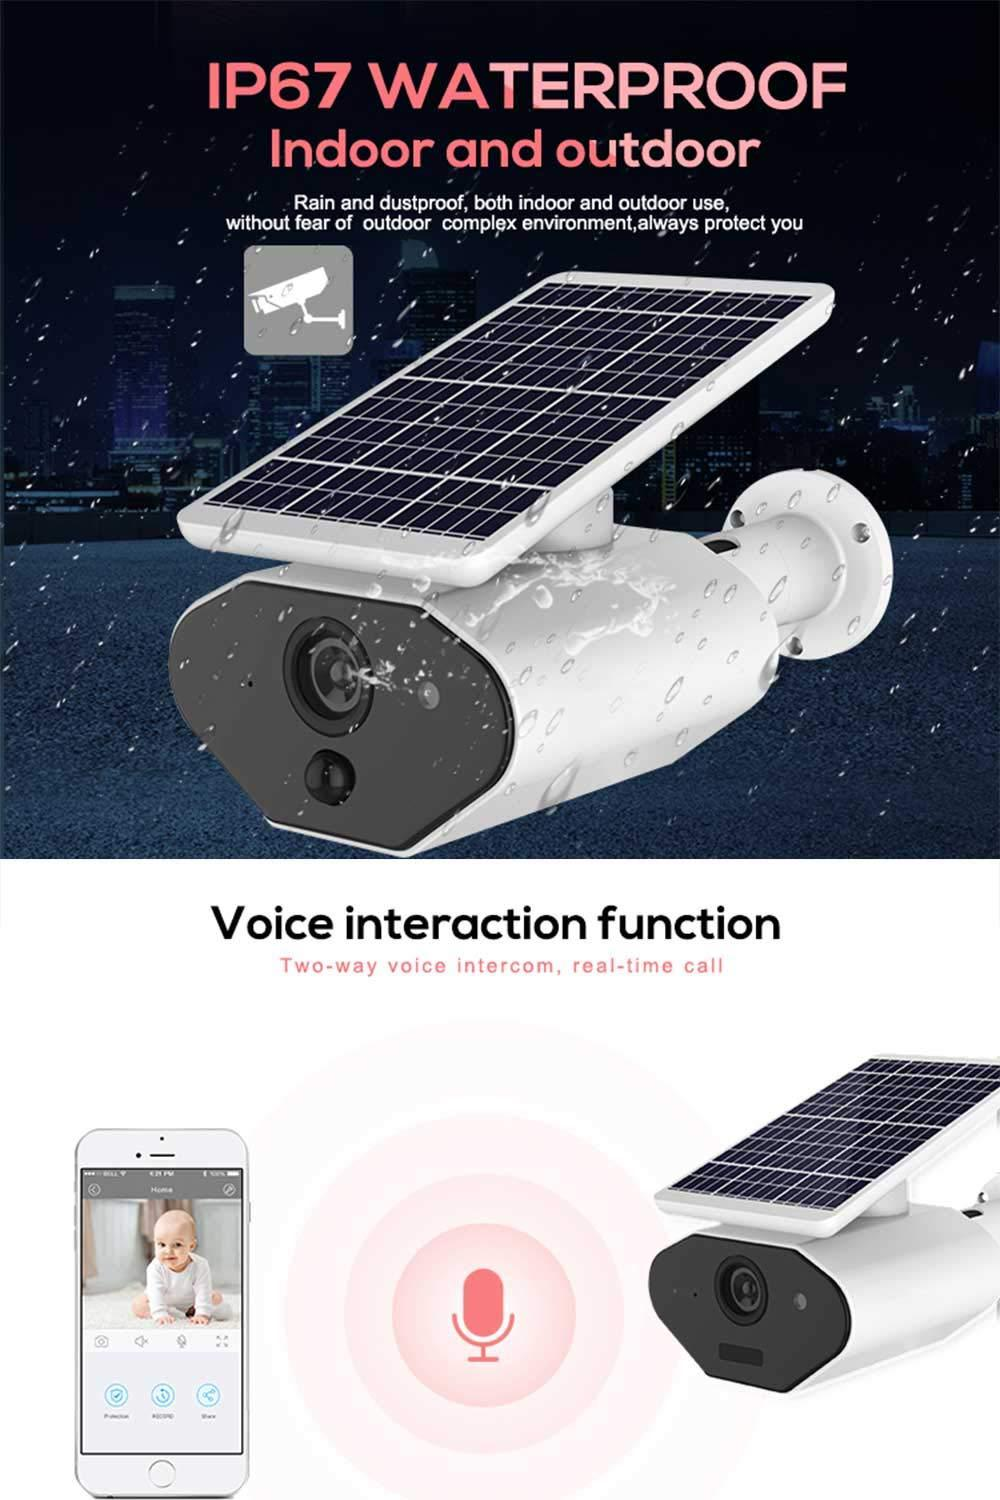 1080p HD Wireless Rechargeable Battery-Powered Security Camera for Outdoor Home Surveillance,